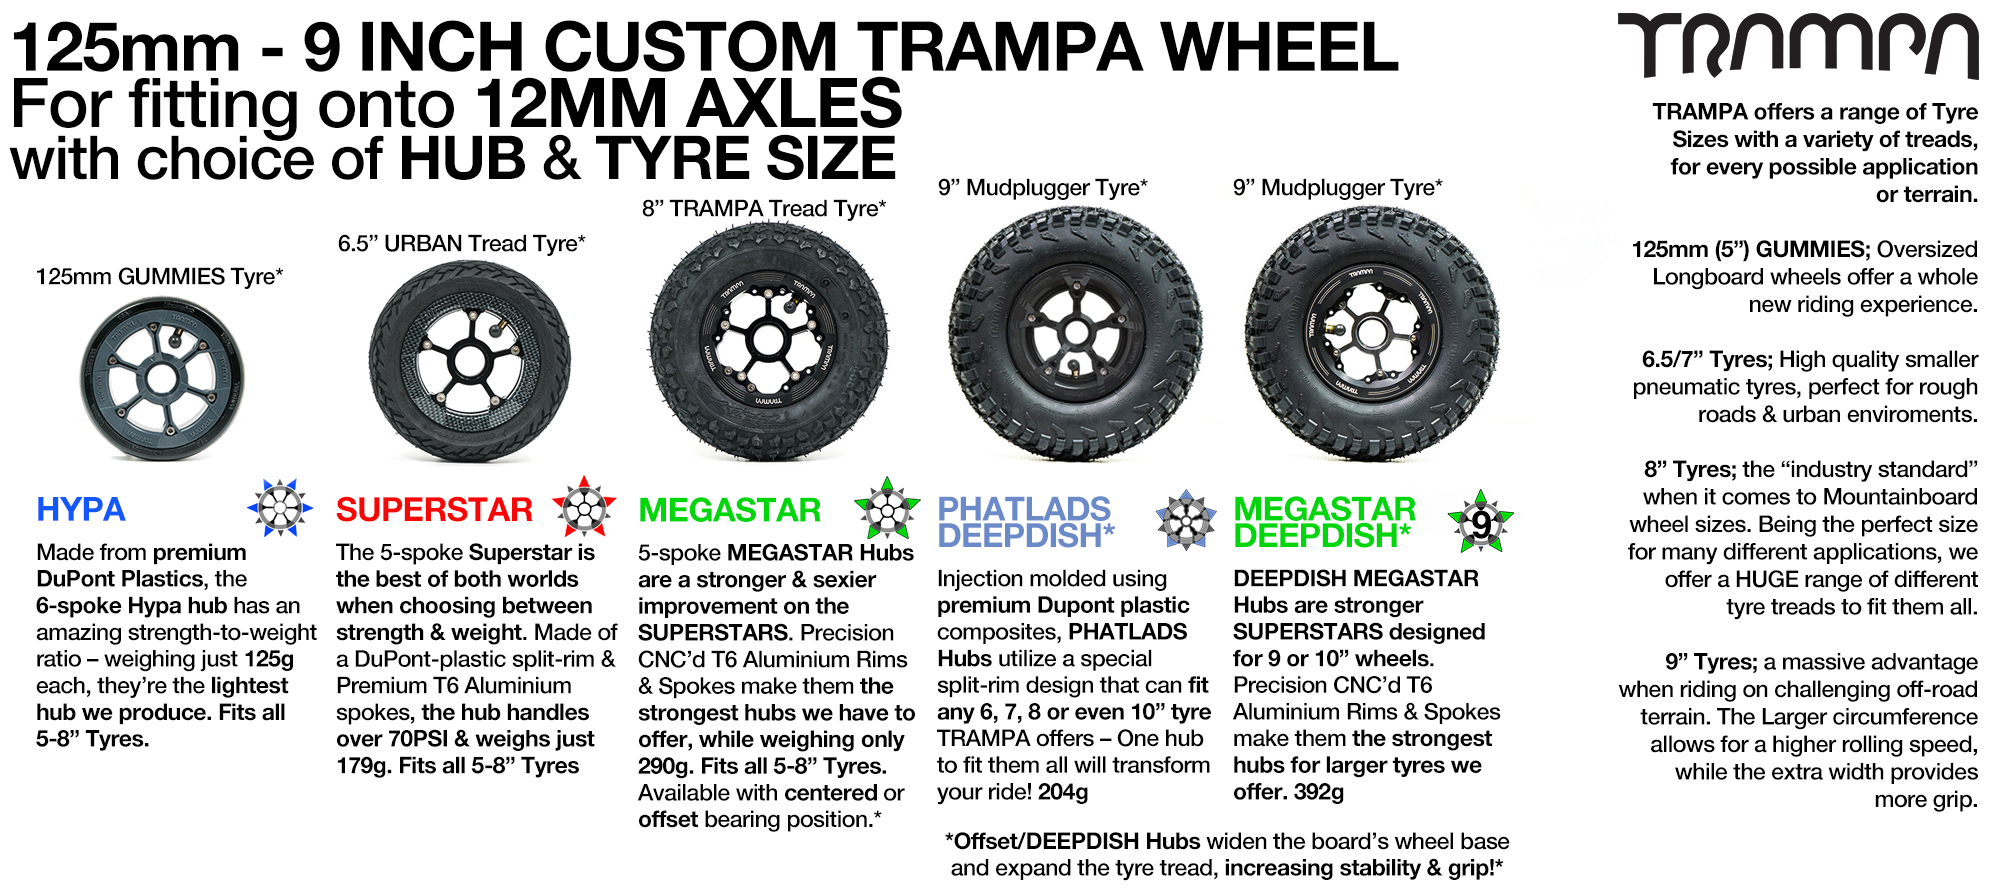 Build your own Custom TRAMPA Wheel - HYPA, SUPERSTAR, 8 Inch MEGASTAR, 9 Inch PRIMO or 9 INCH DEEP DISH MEGASTAR Wheels! Awesome selection from 5 Inch to 9 Inch, on & off road! Amazing!!